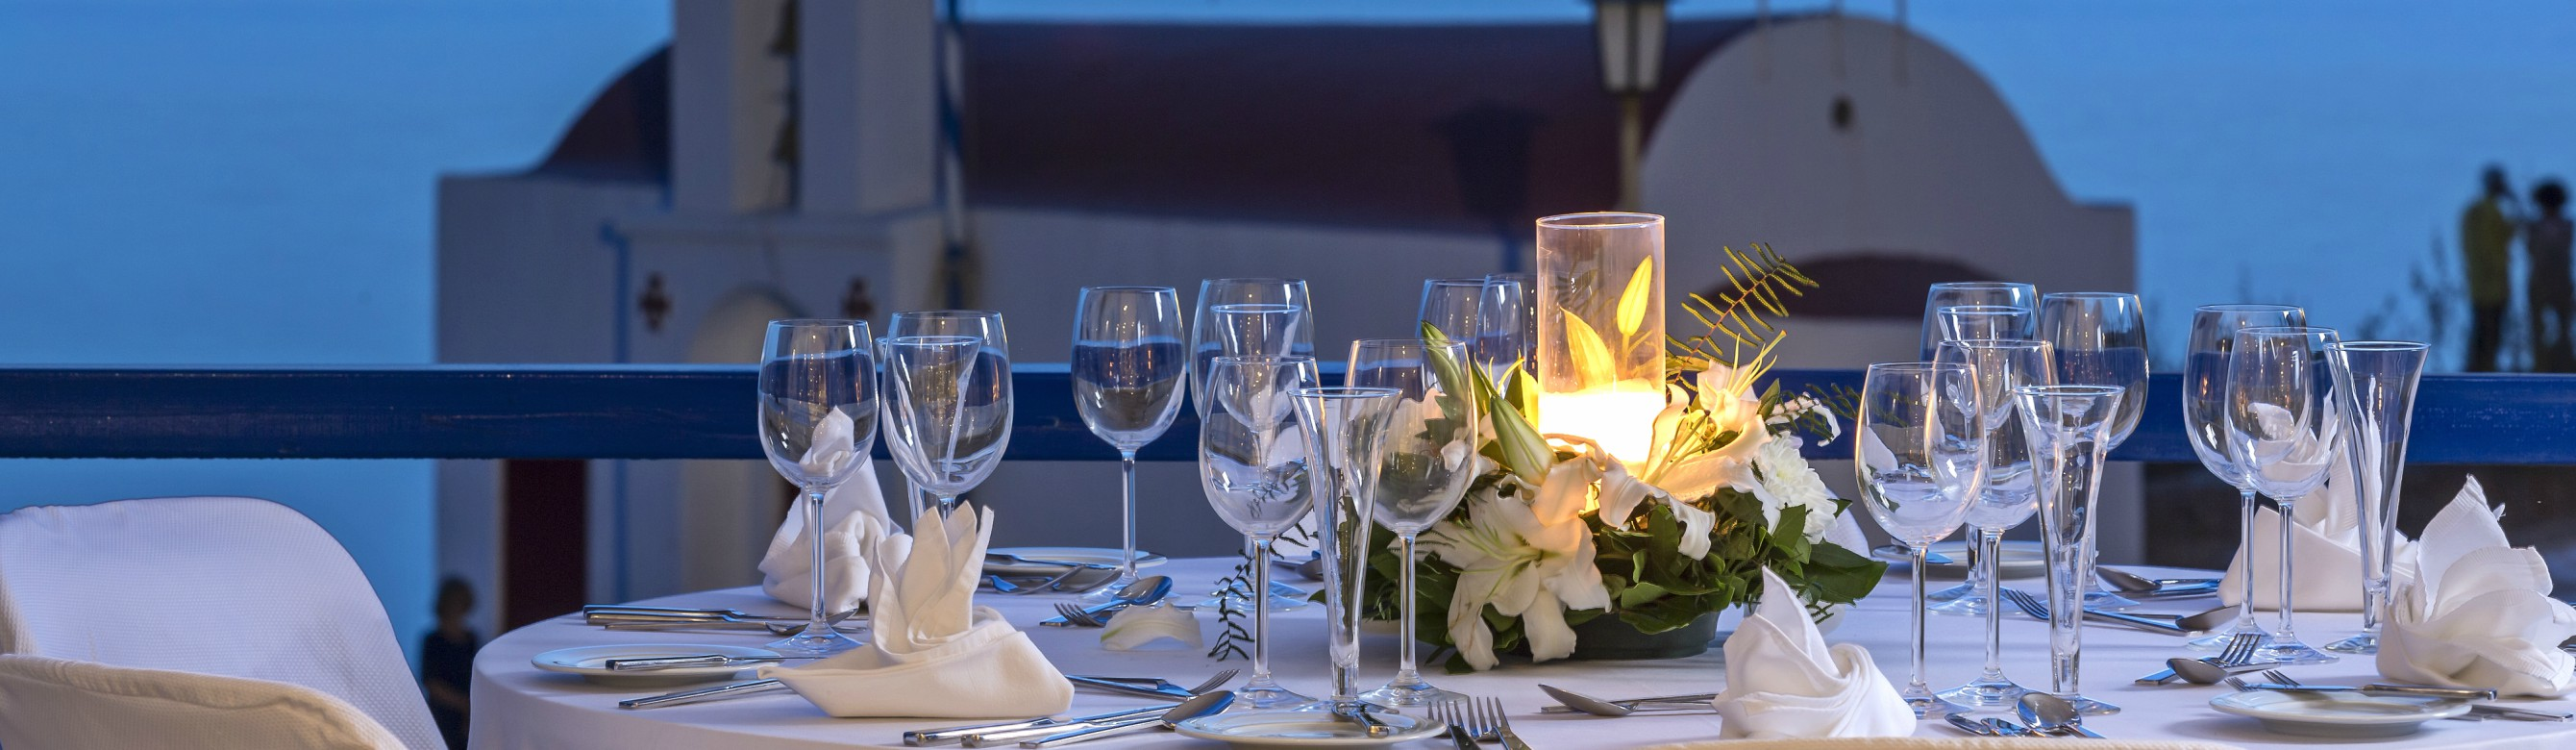 _ Mykonos_Theoxenia_-_Wedding_dinner_2.jpg